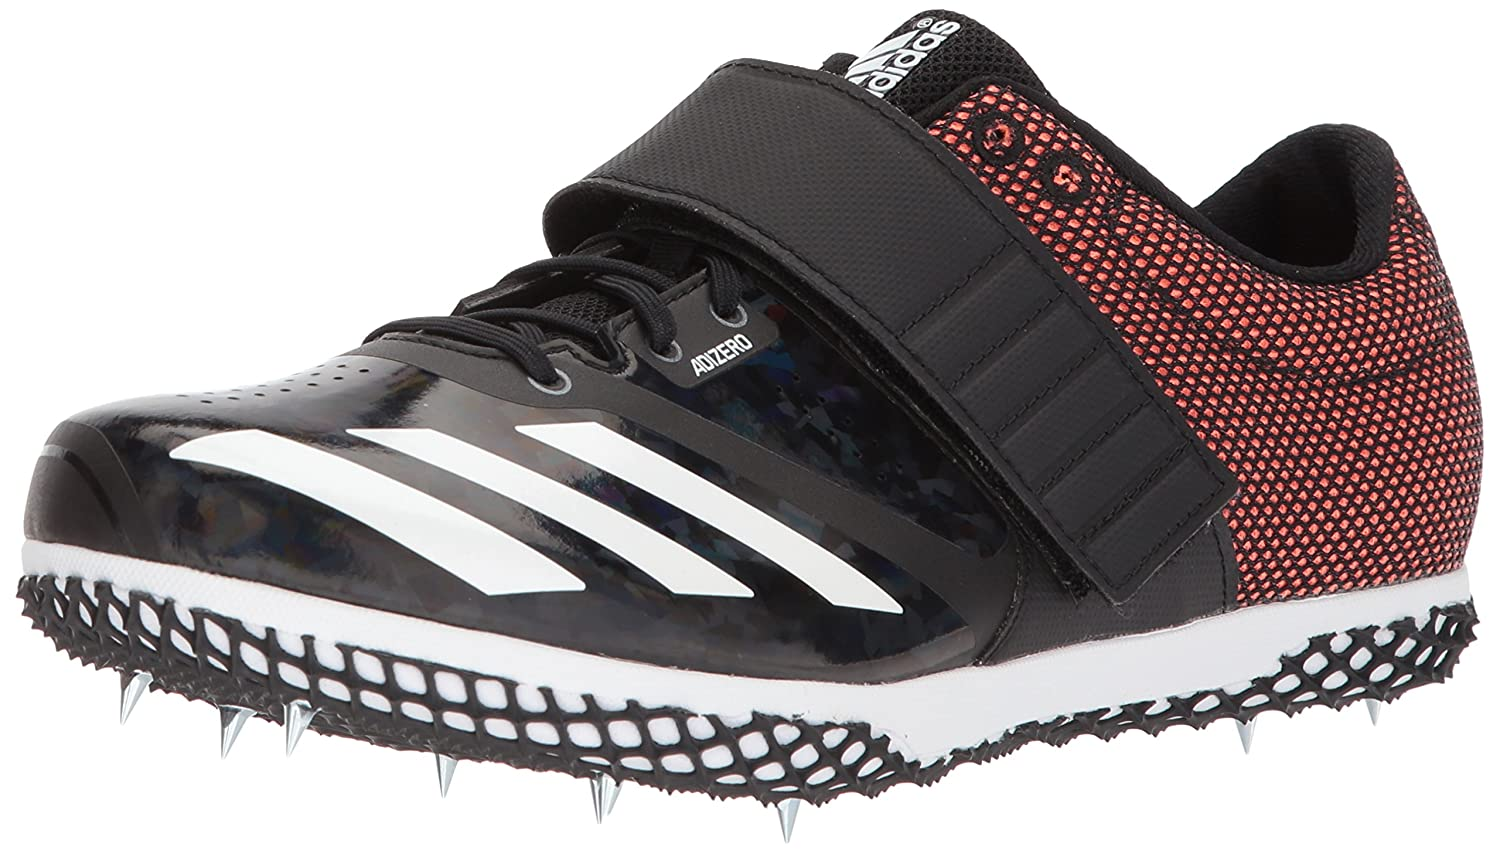 adidas Adizero Hj B071GSFCY7 5.5 M US|Core Black, Solar Orange, Ftwr White